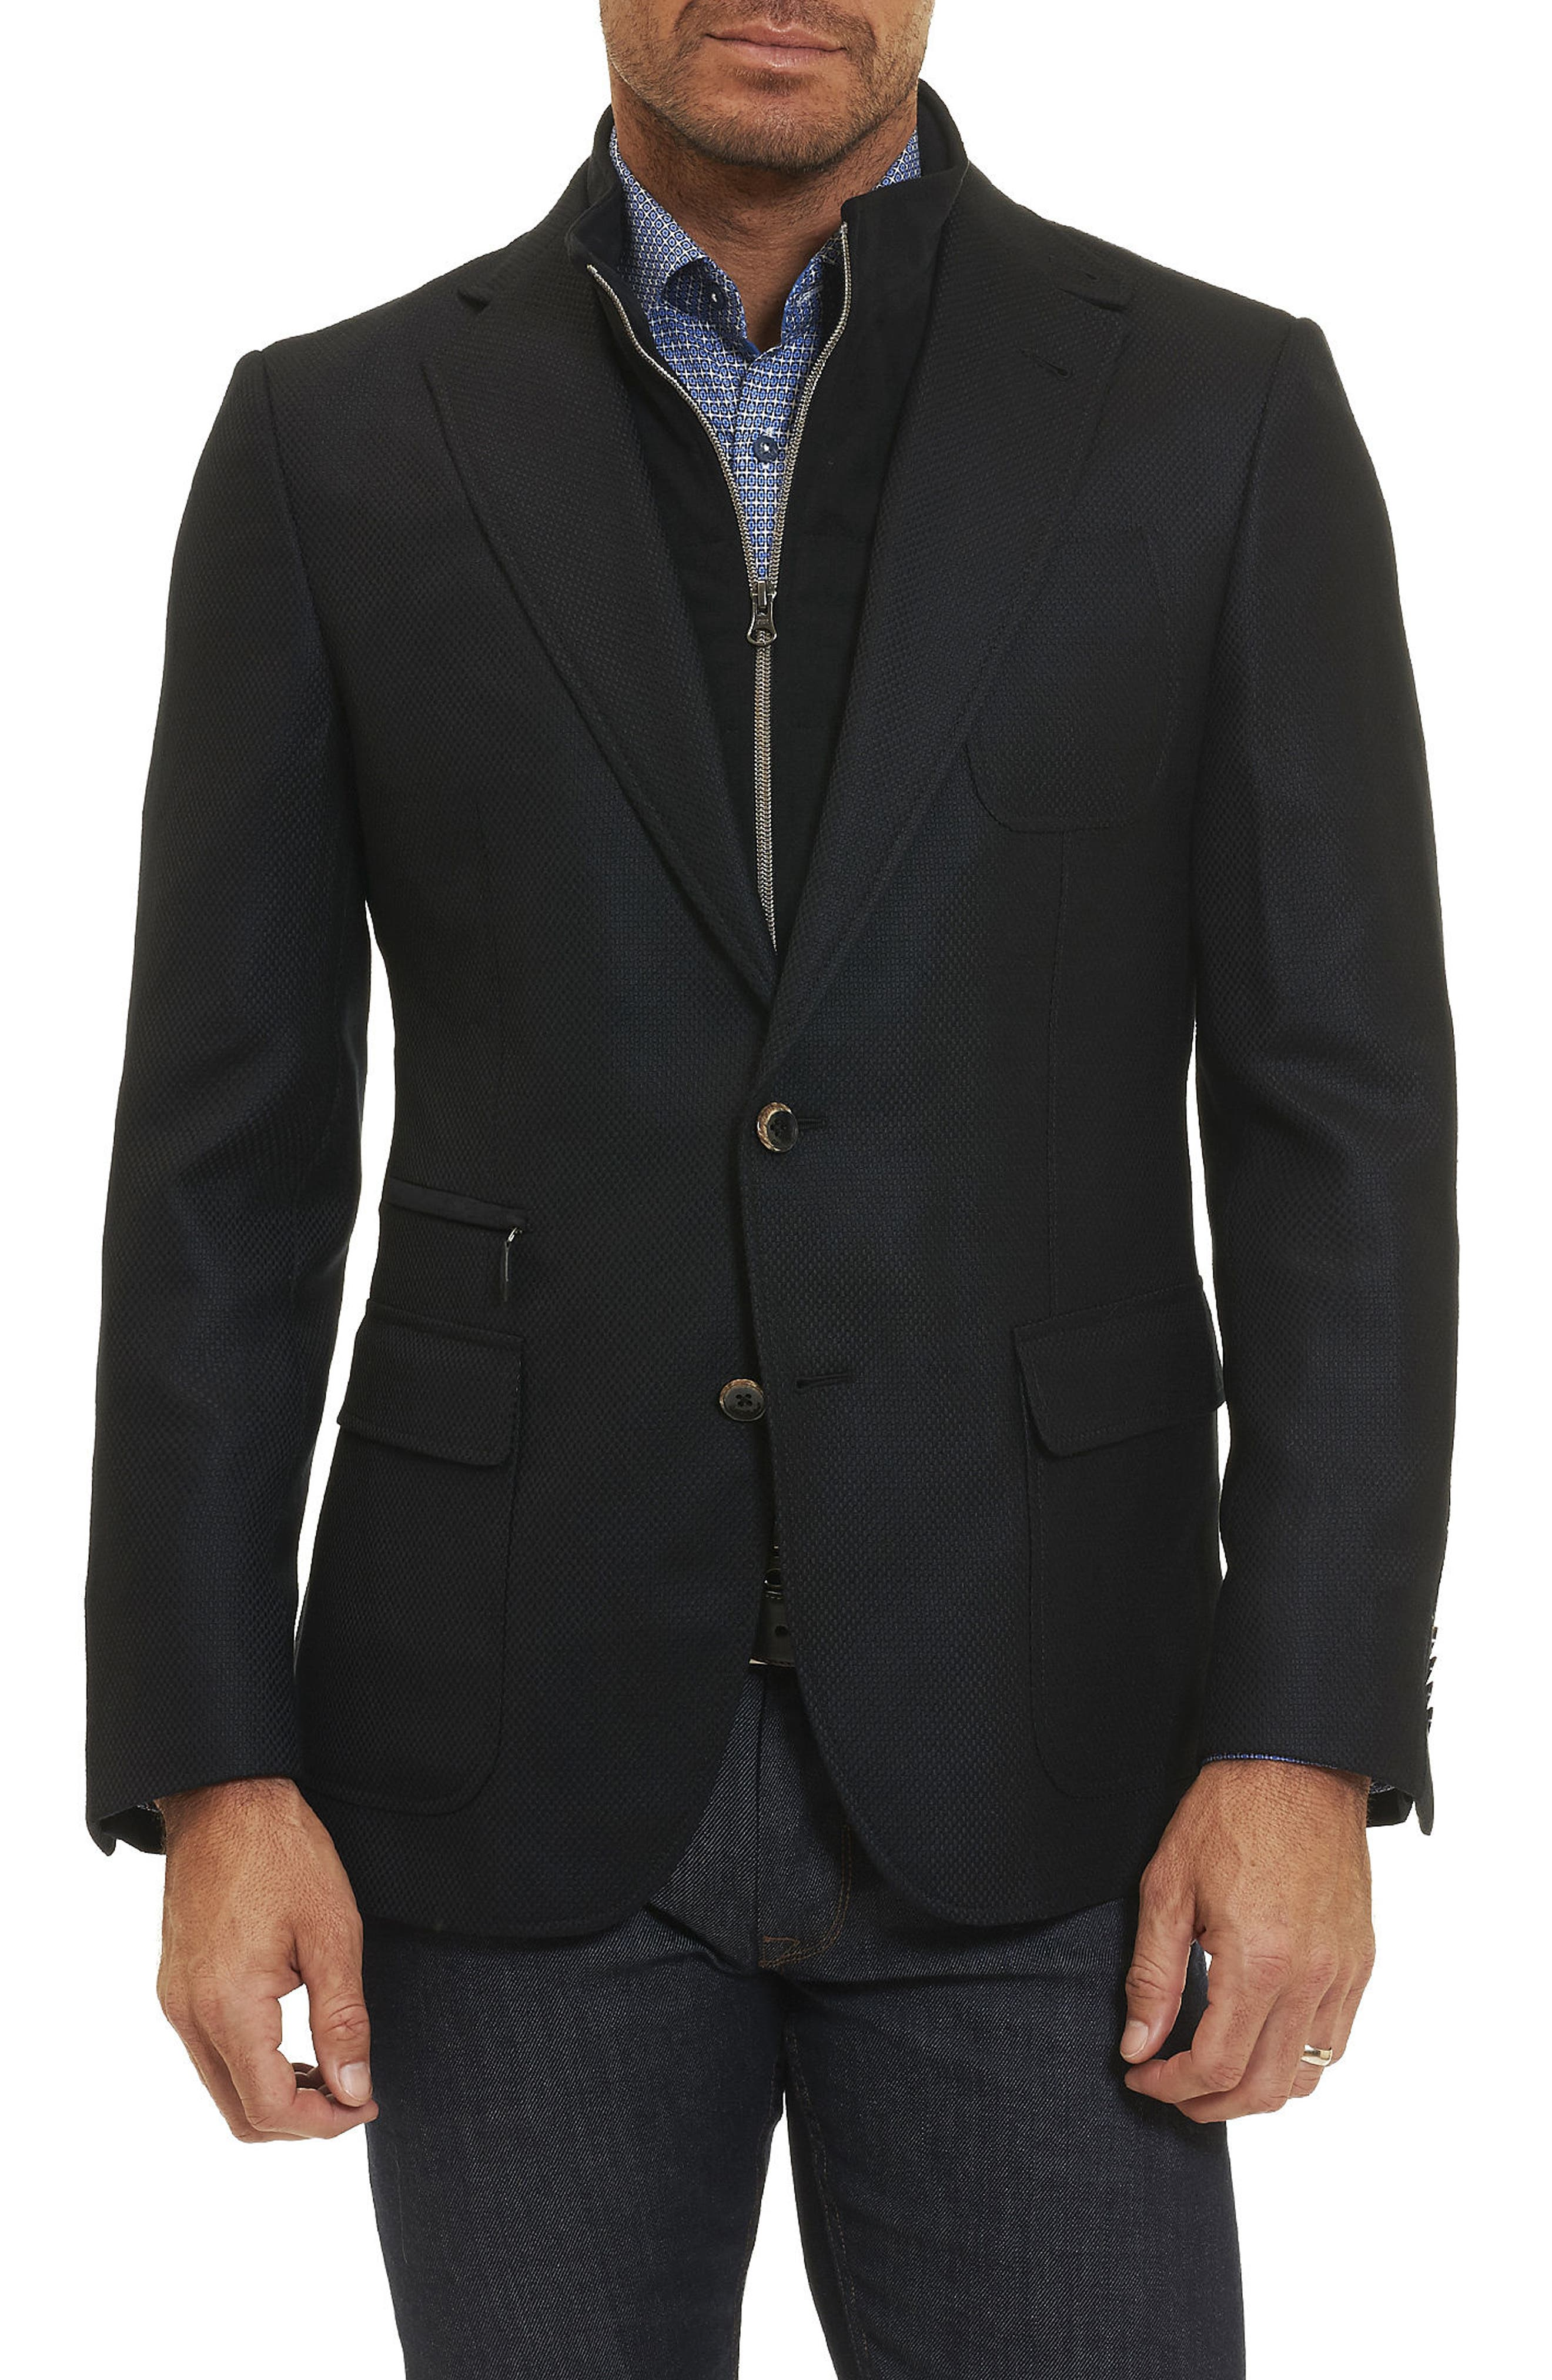 Downhill Sport Coat with Removable Bib,                         Main,                         color,